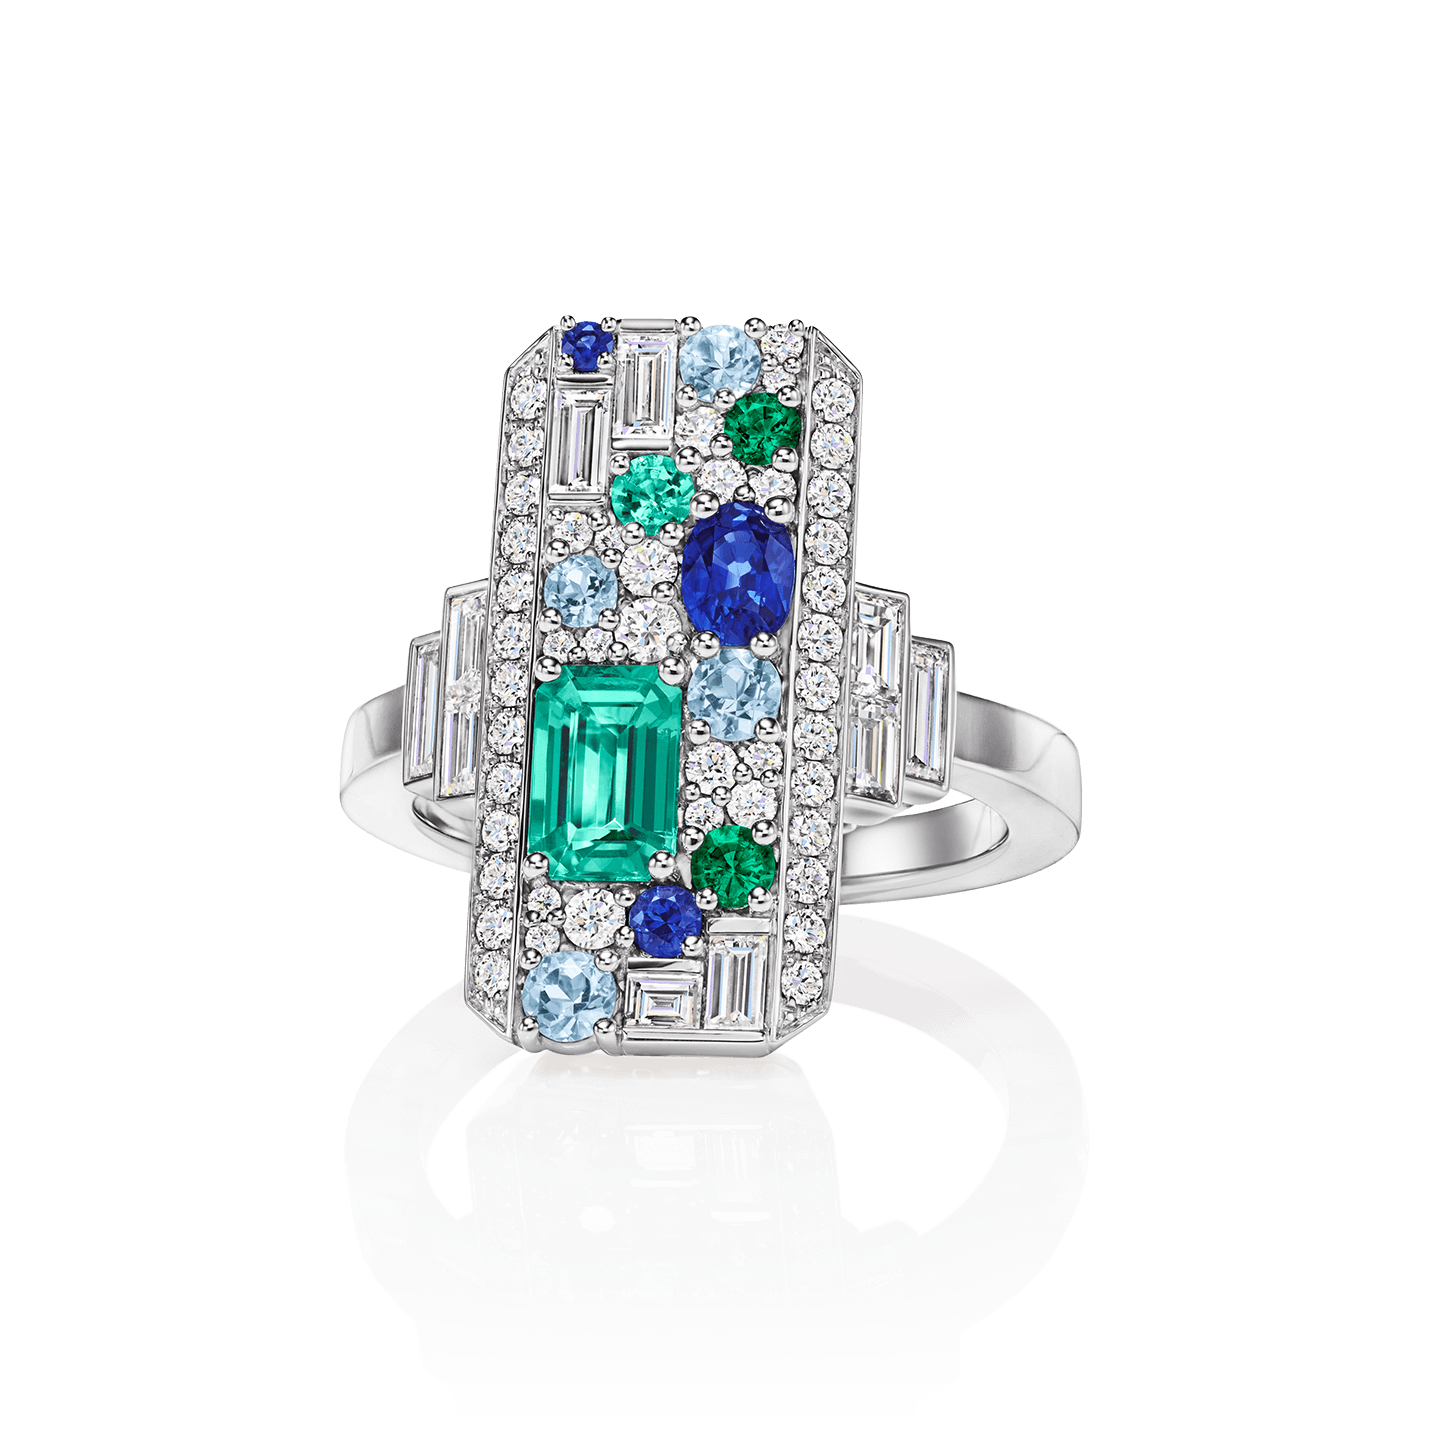 An octagonal ring featuring 3 round and oval-shaped sapphires, 4 round aquamarines, and 1 emerald-cut and 3 round emeralds weighing a total of approximately 1.05 carats with 54 square-cut, baguette and round brilliant diamonds set in platinum